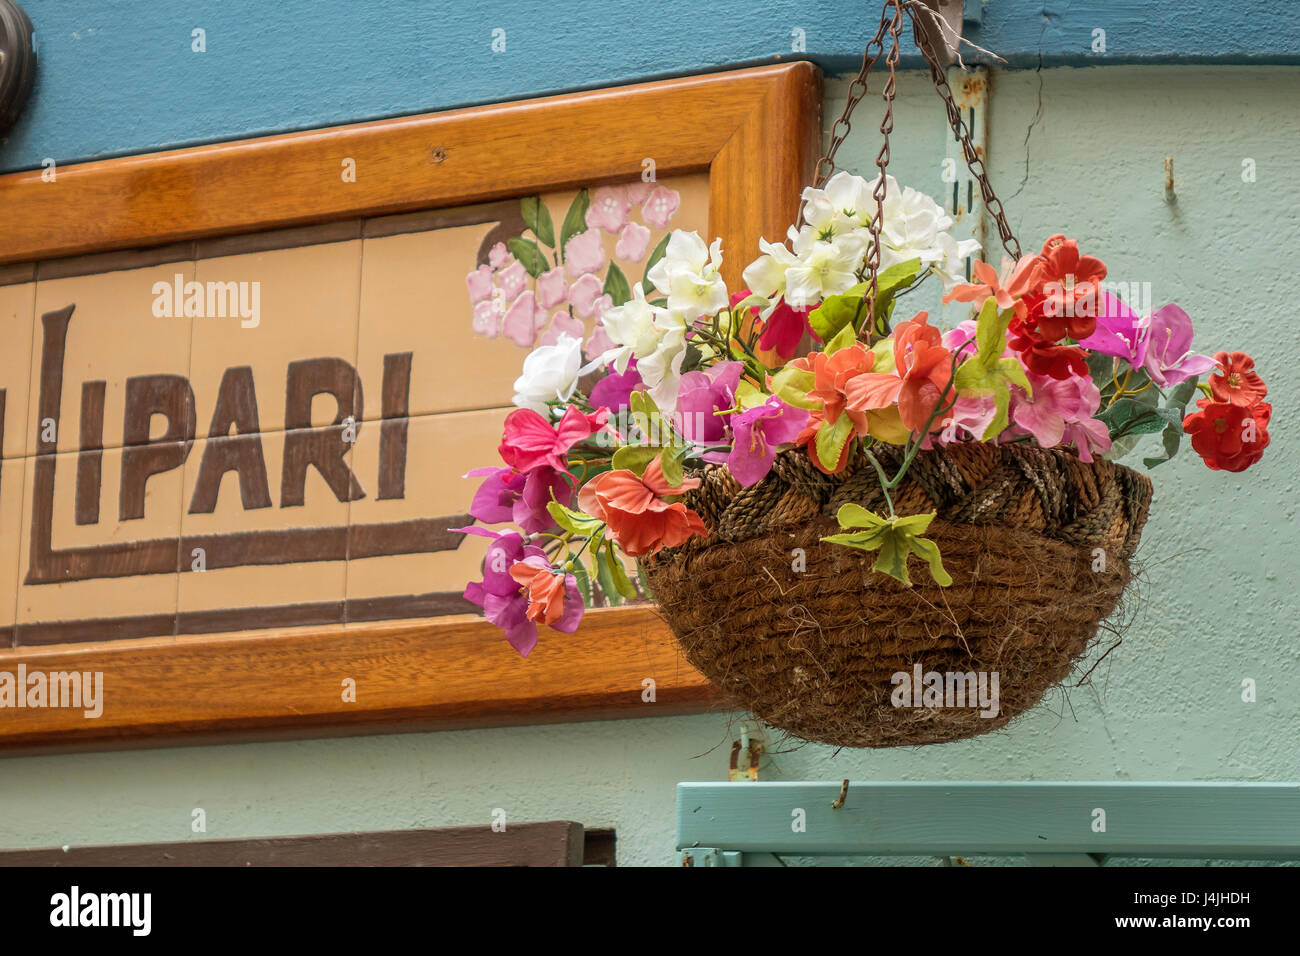 Italy, Aeolian Islands, Lipari, street flowers - Stock Image